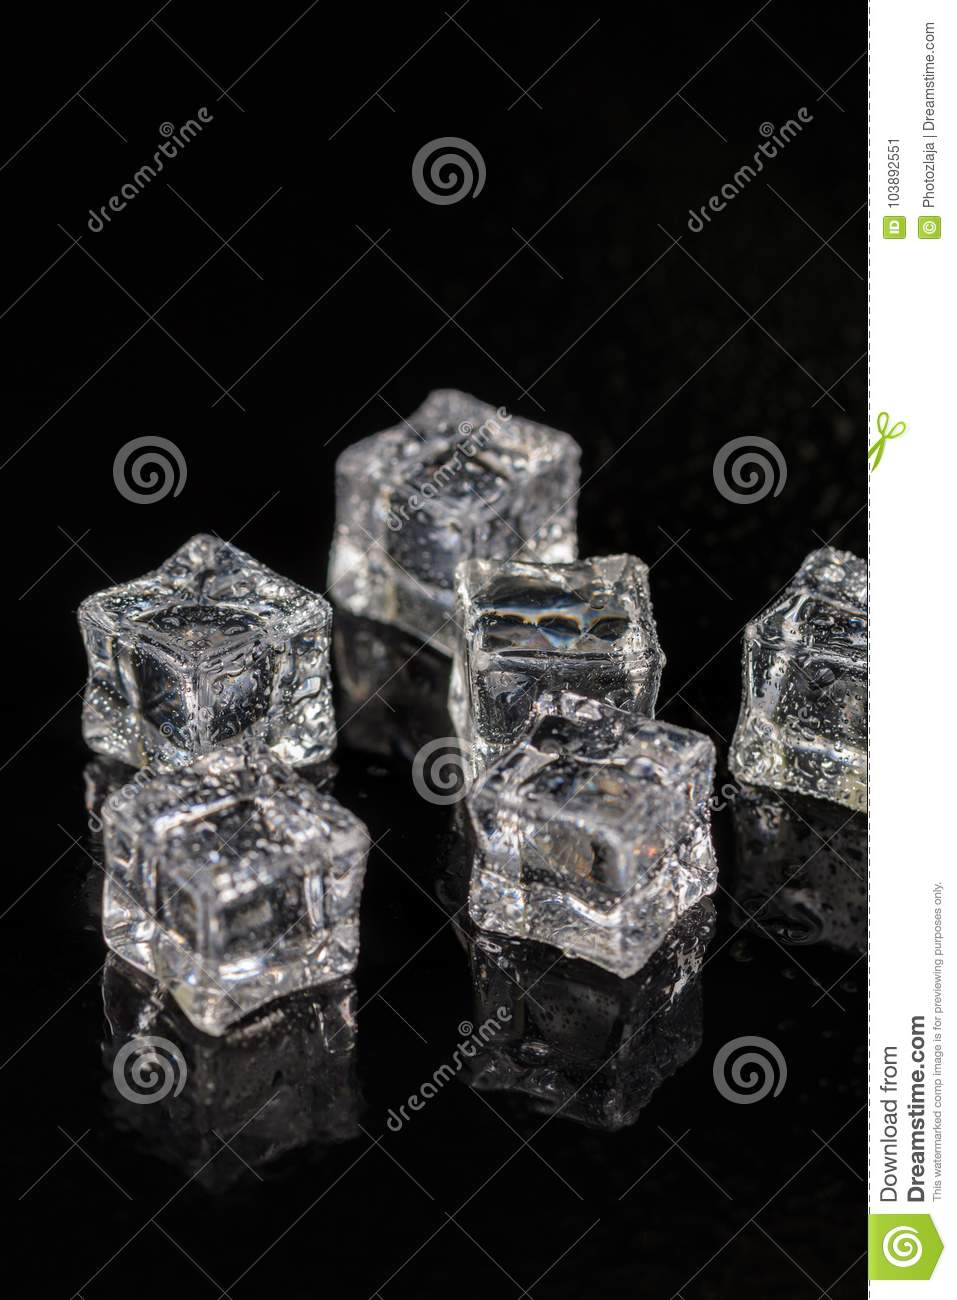 Ice cubes with drops of water on the black background with reflections